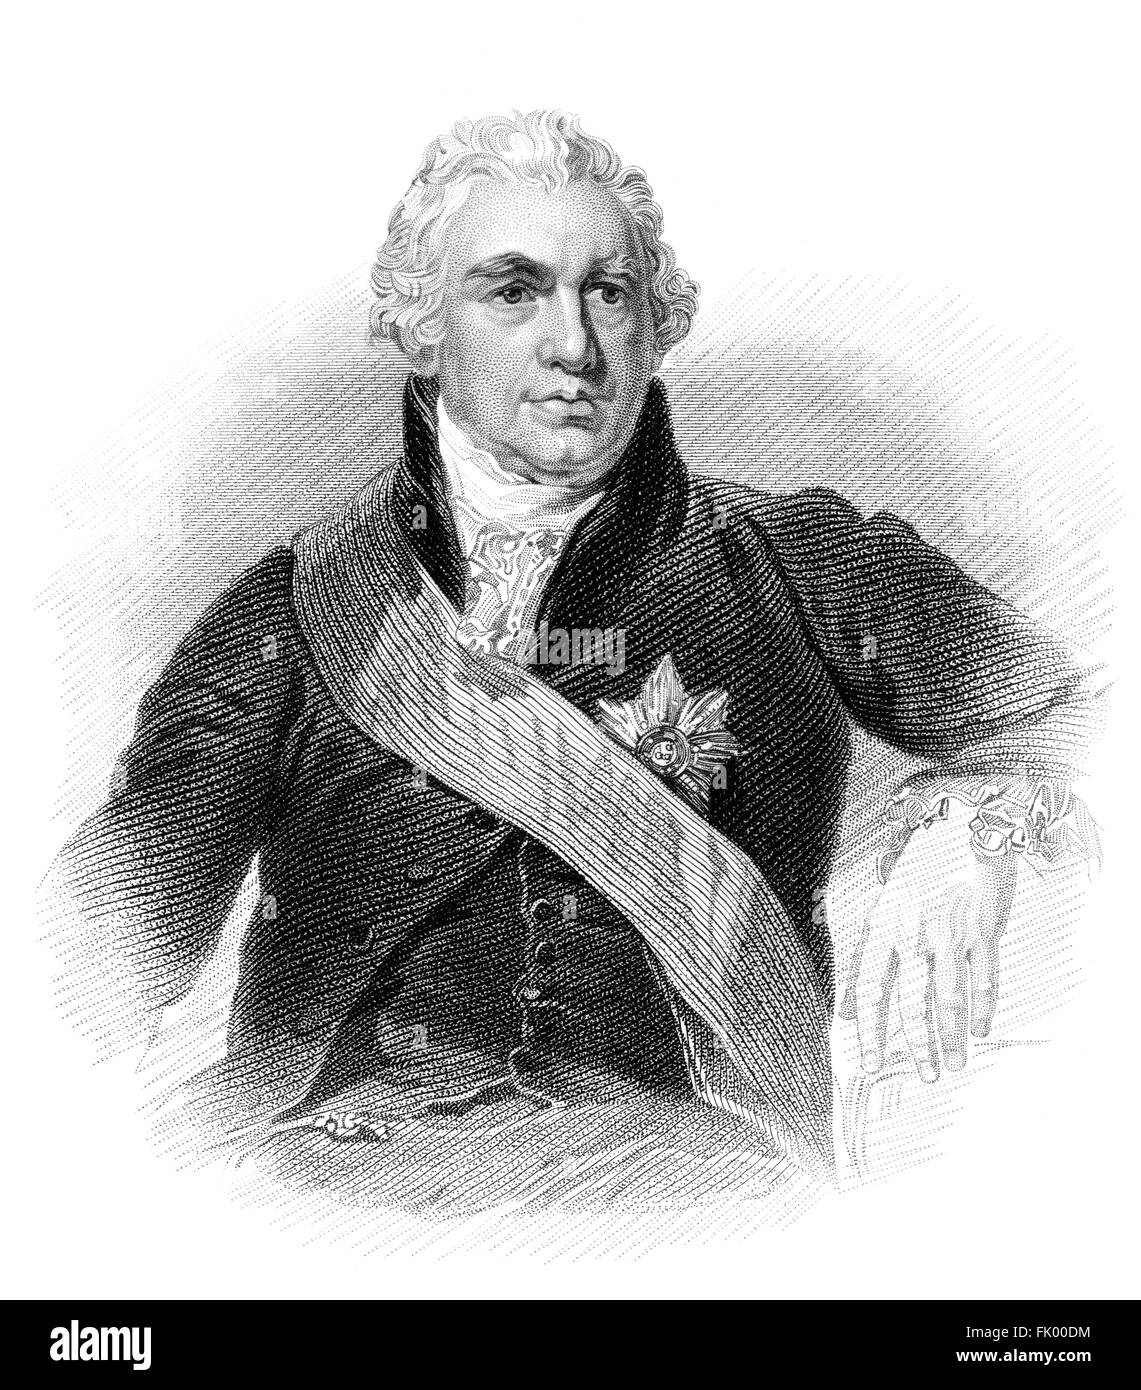 Sir Joseph Banks, 1st Baronet, 1743-1820, a British naturalist, botanist and patron of the natural sciences - Stock Image